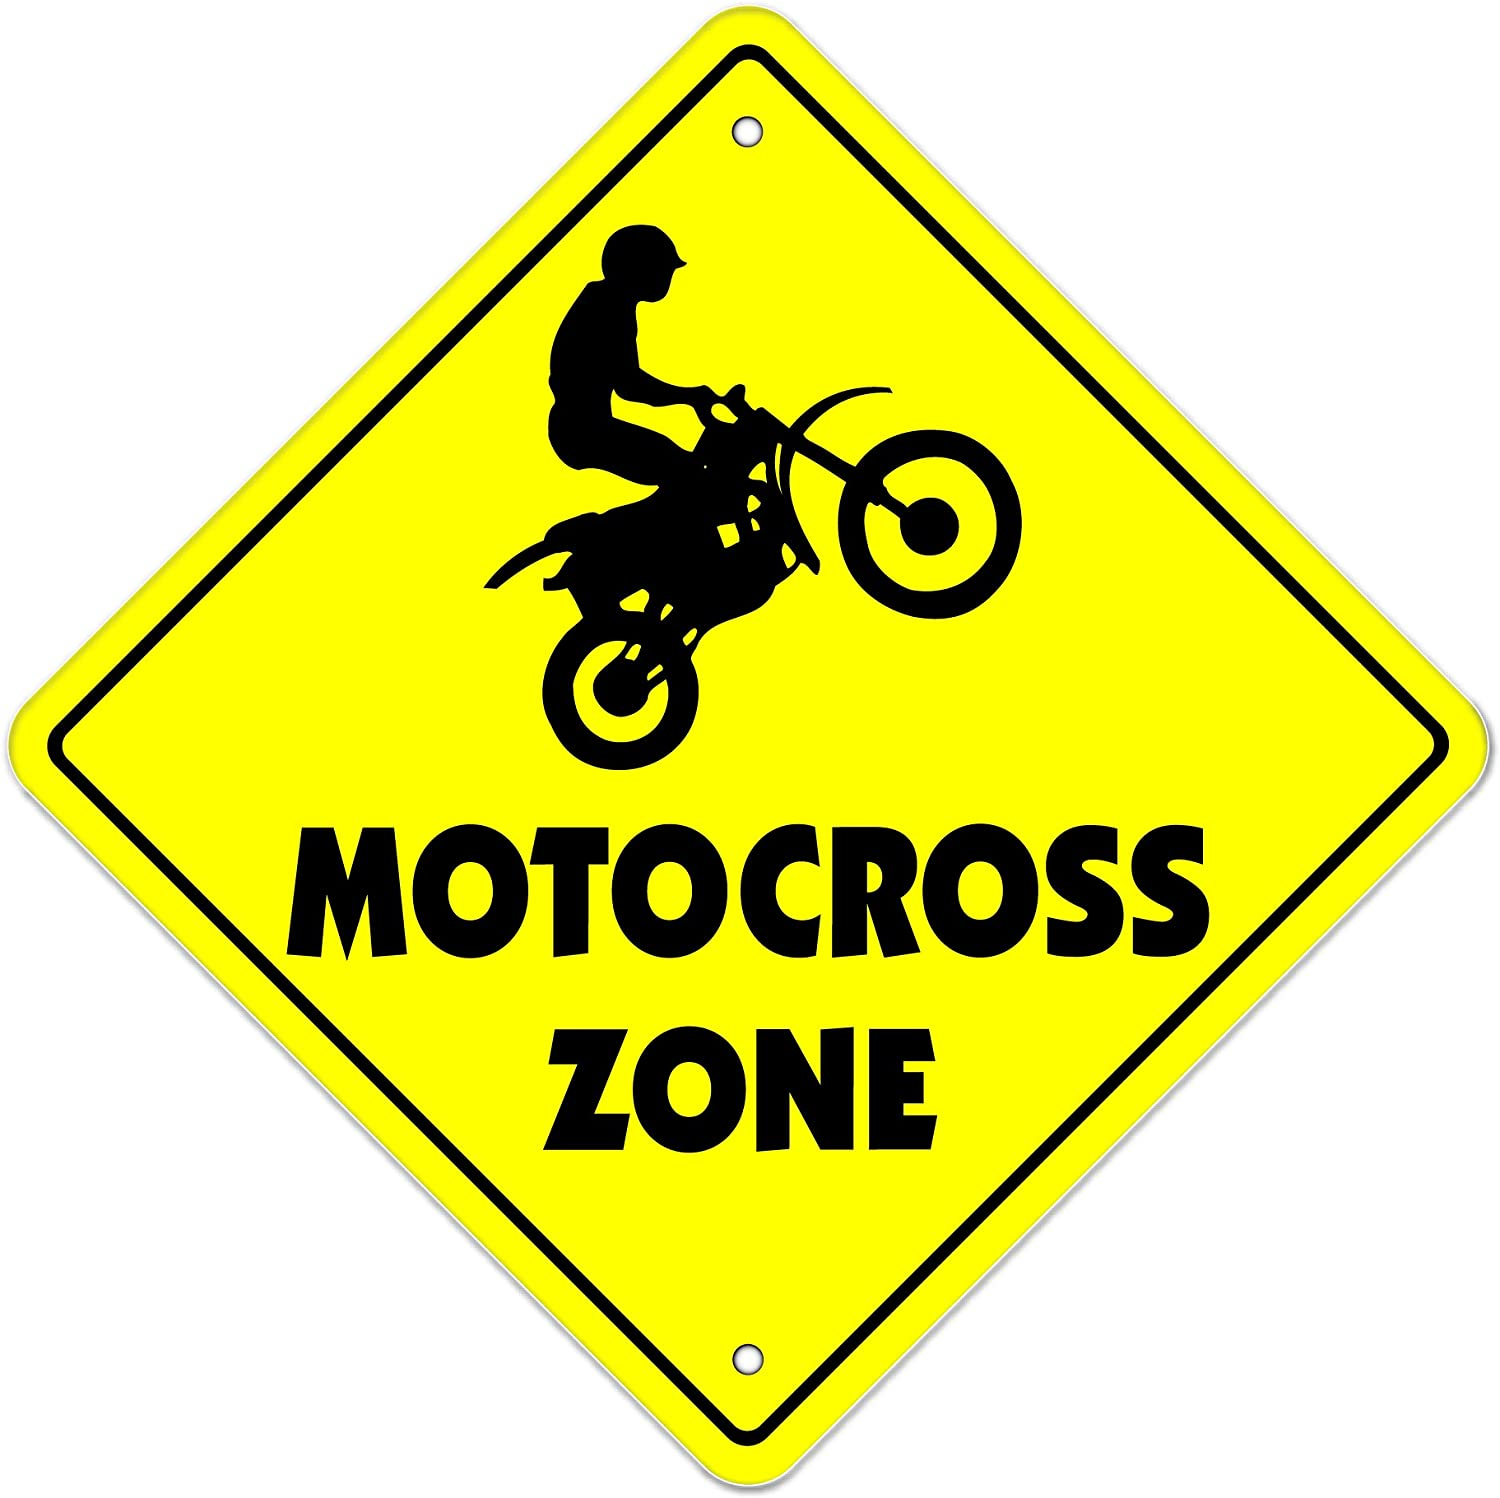 """Motocross Crossing Sign Zone Xing 